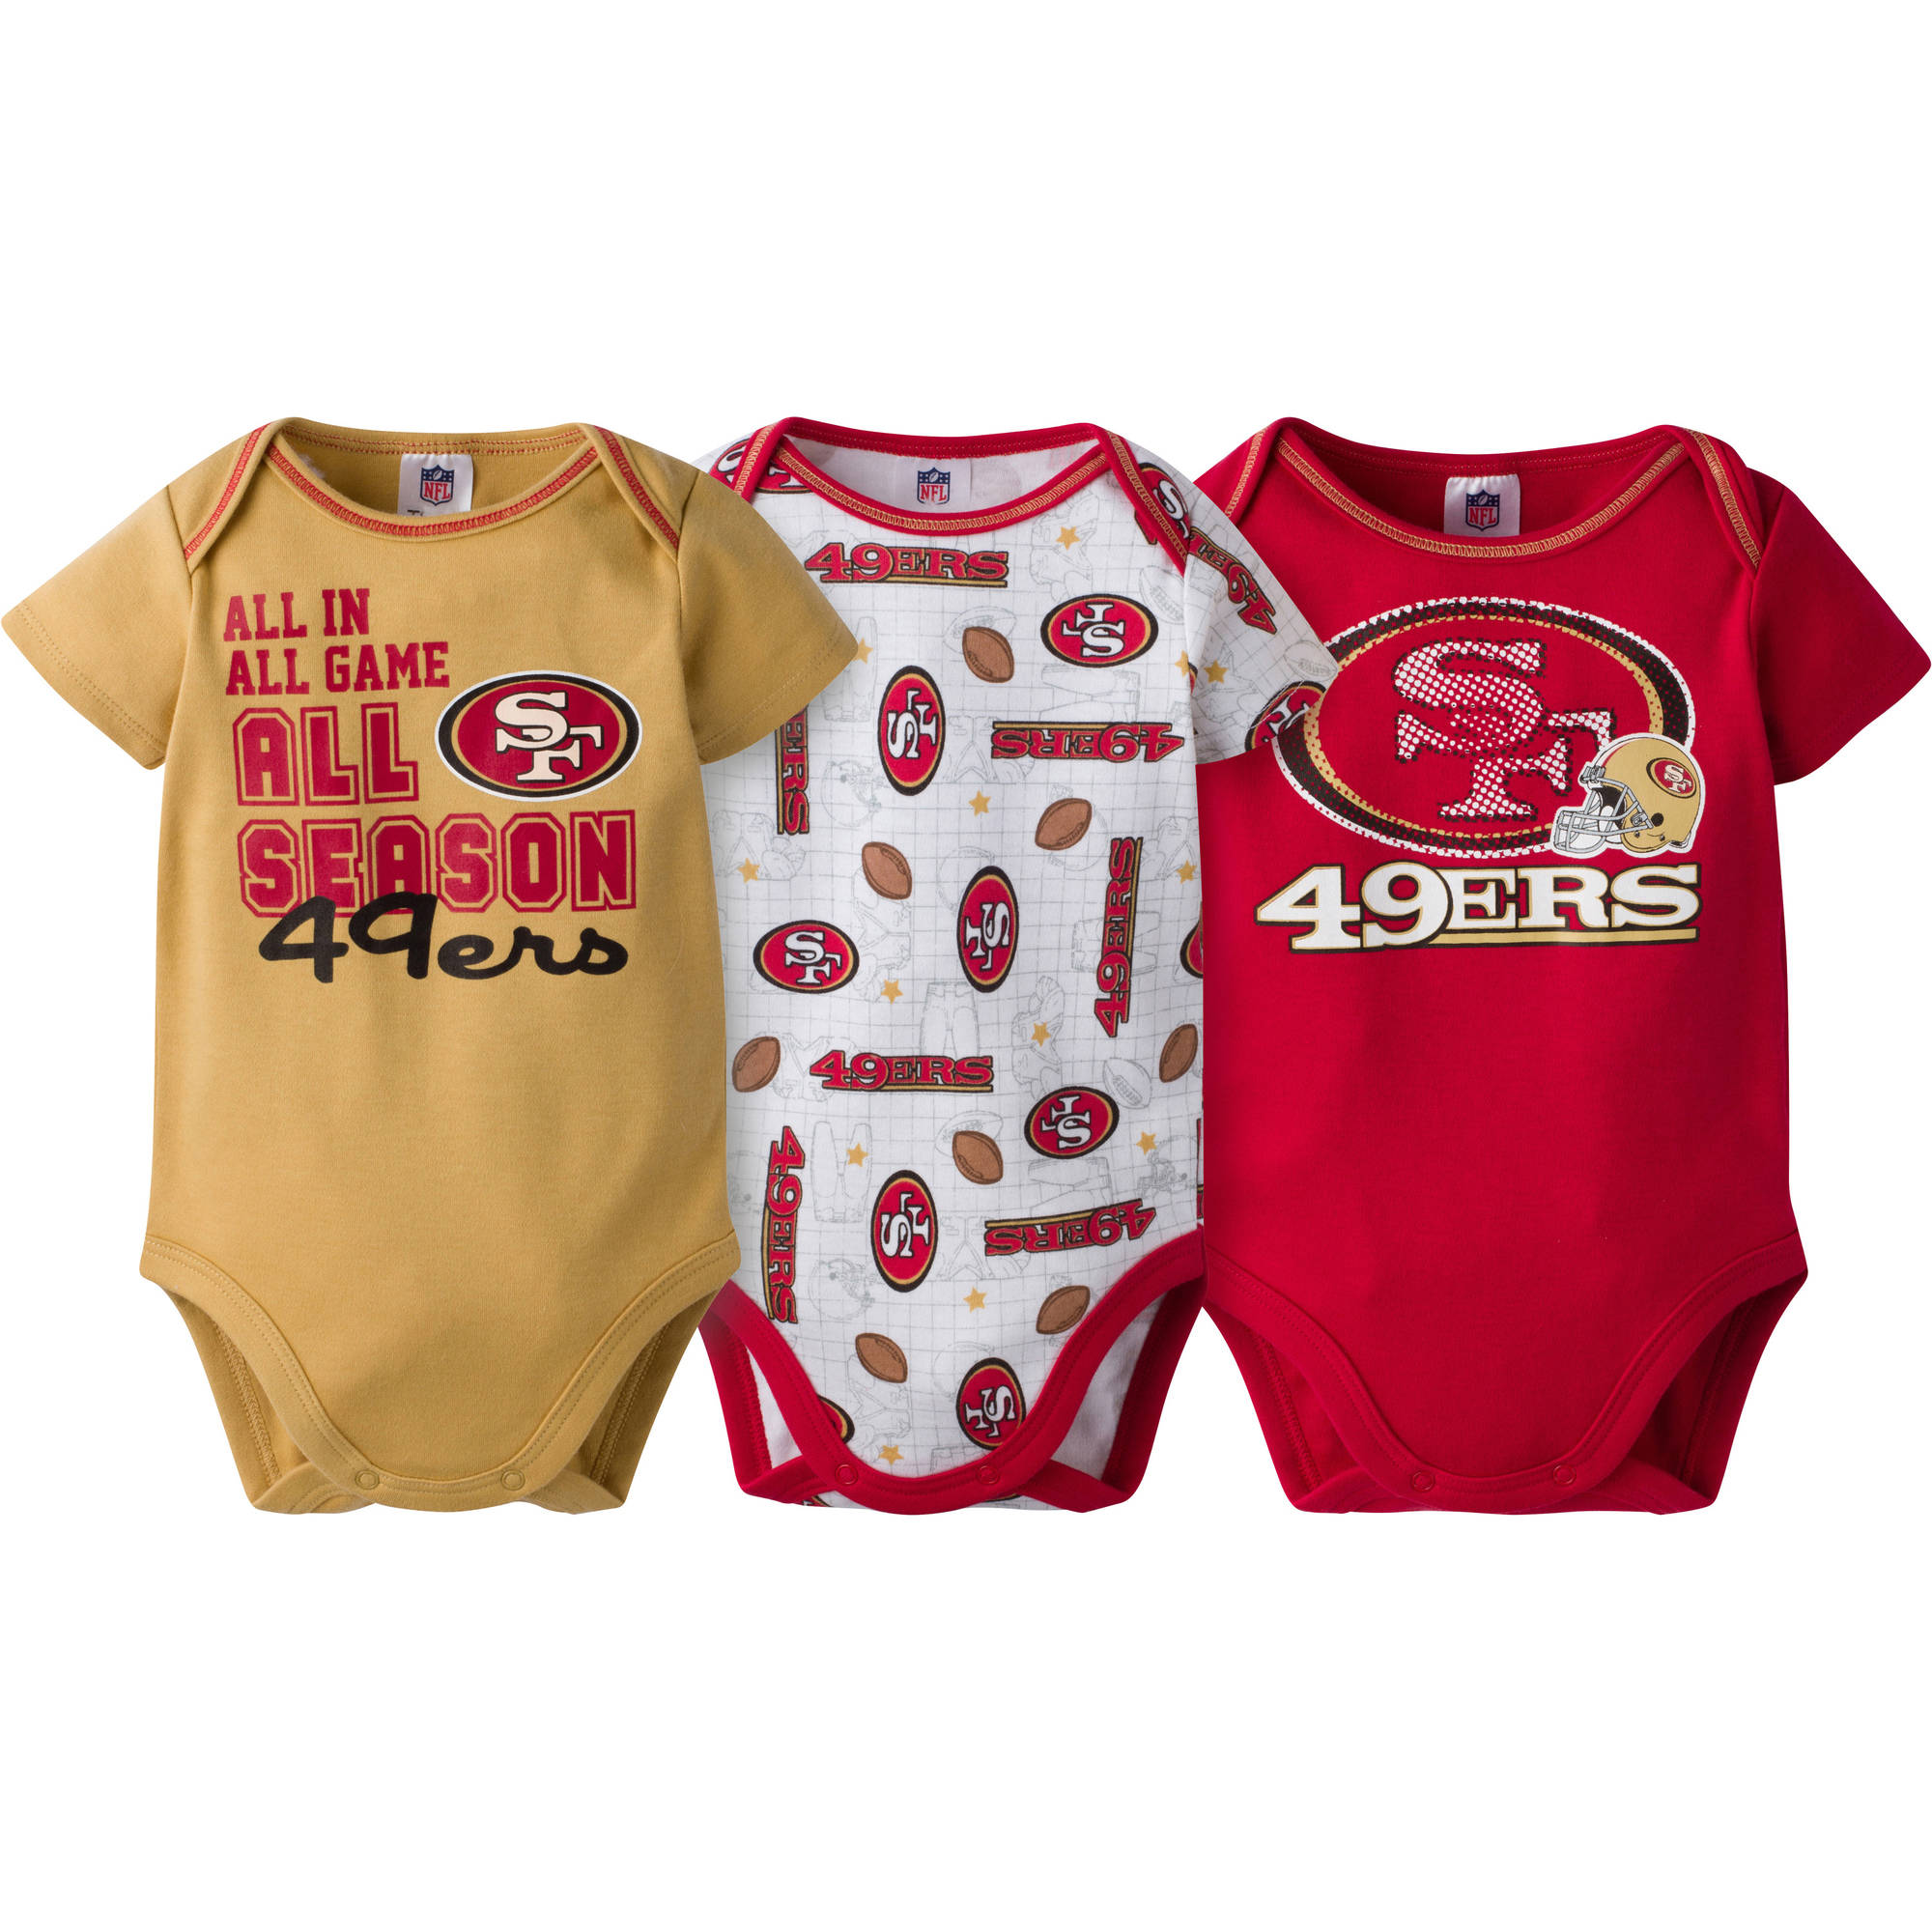 NFL San Francisco 49ers Baby Boys Short Sleeve Bodysuit Set, 3-Pack